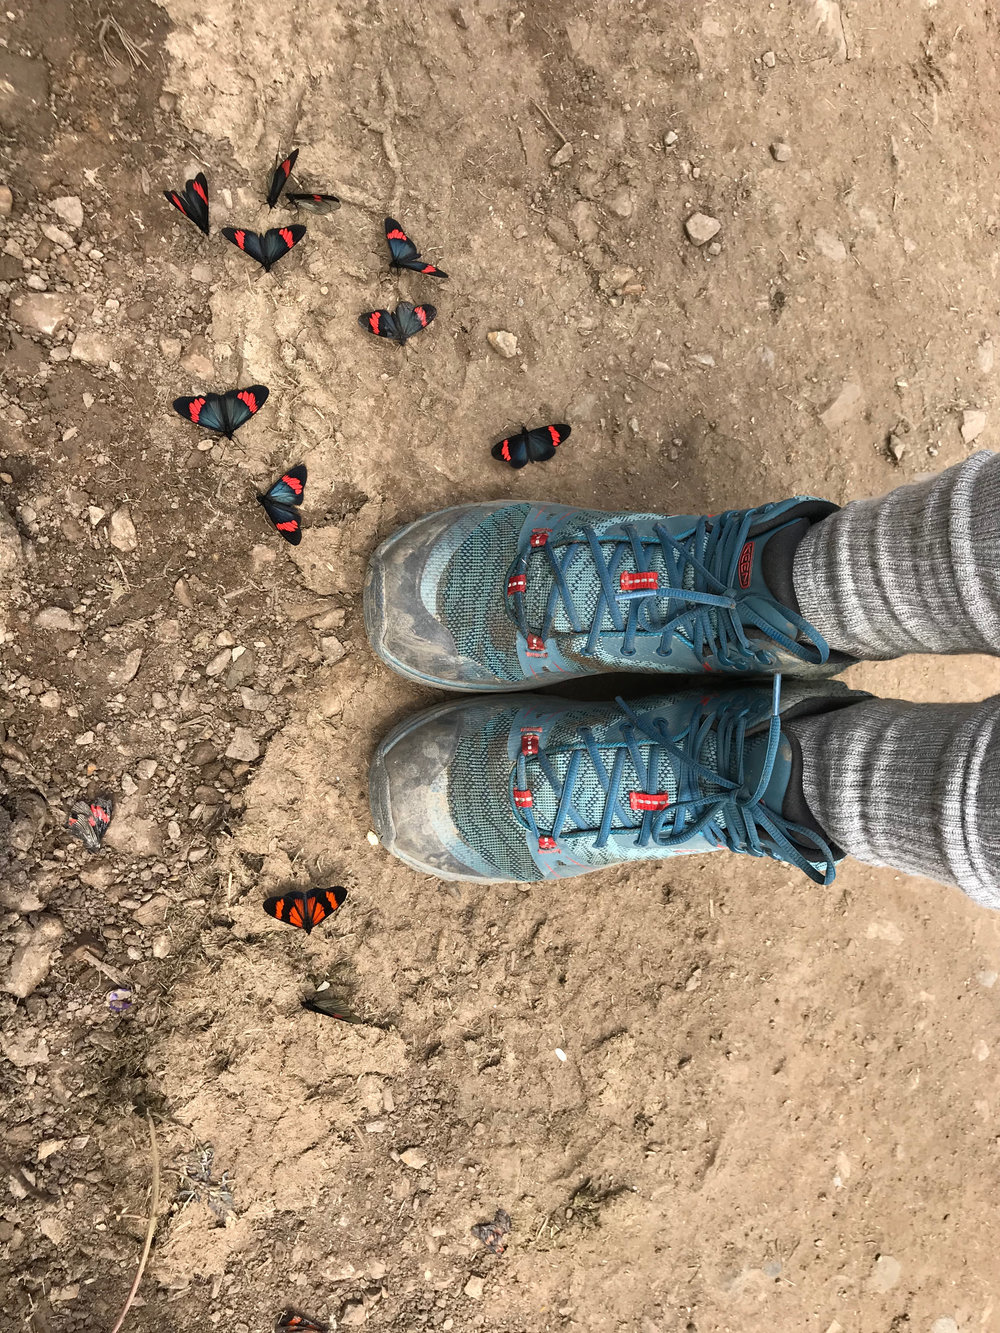 These butterflies on the trail matched by fantastic Keen boots. Salkantay Trek, Peru.